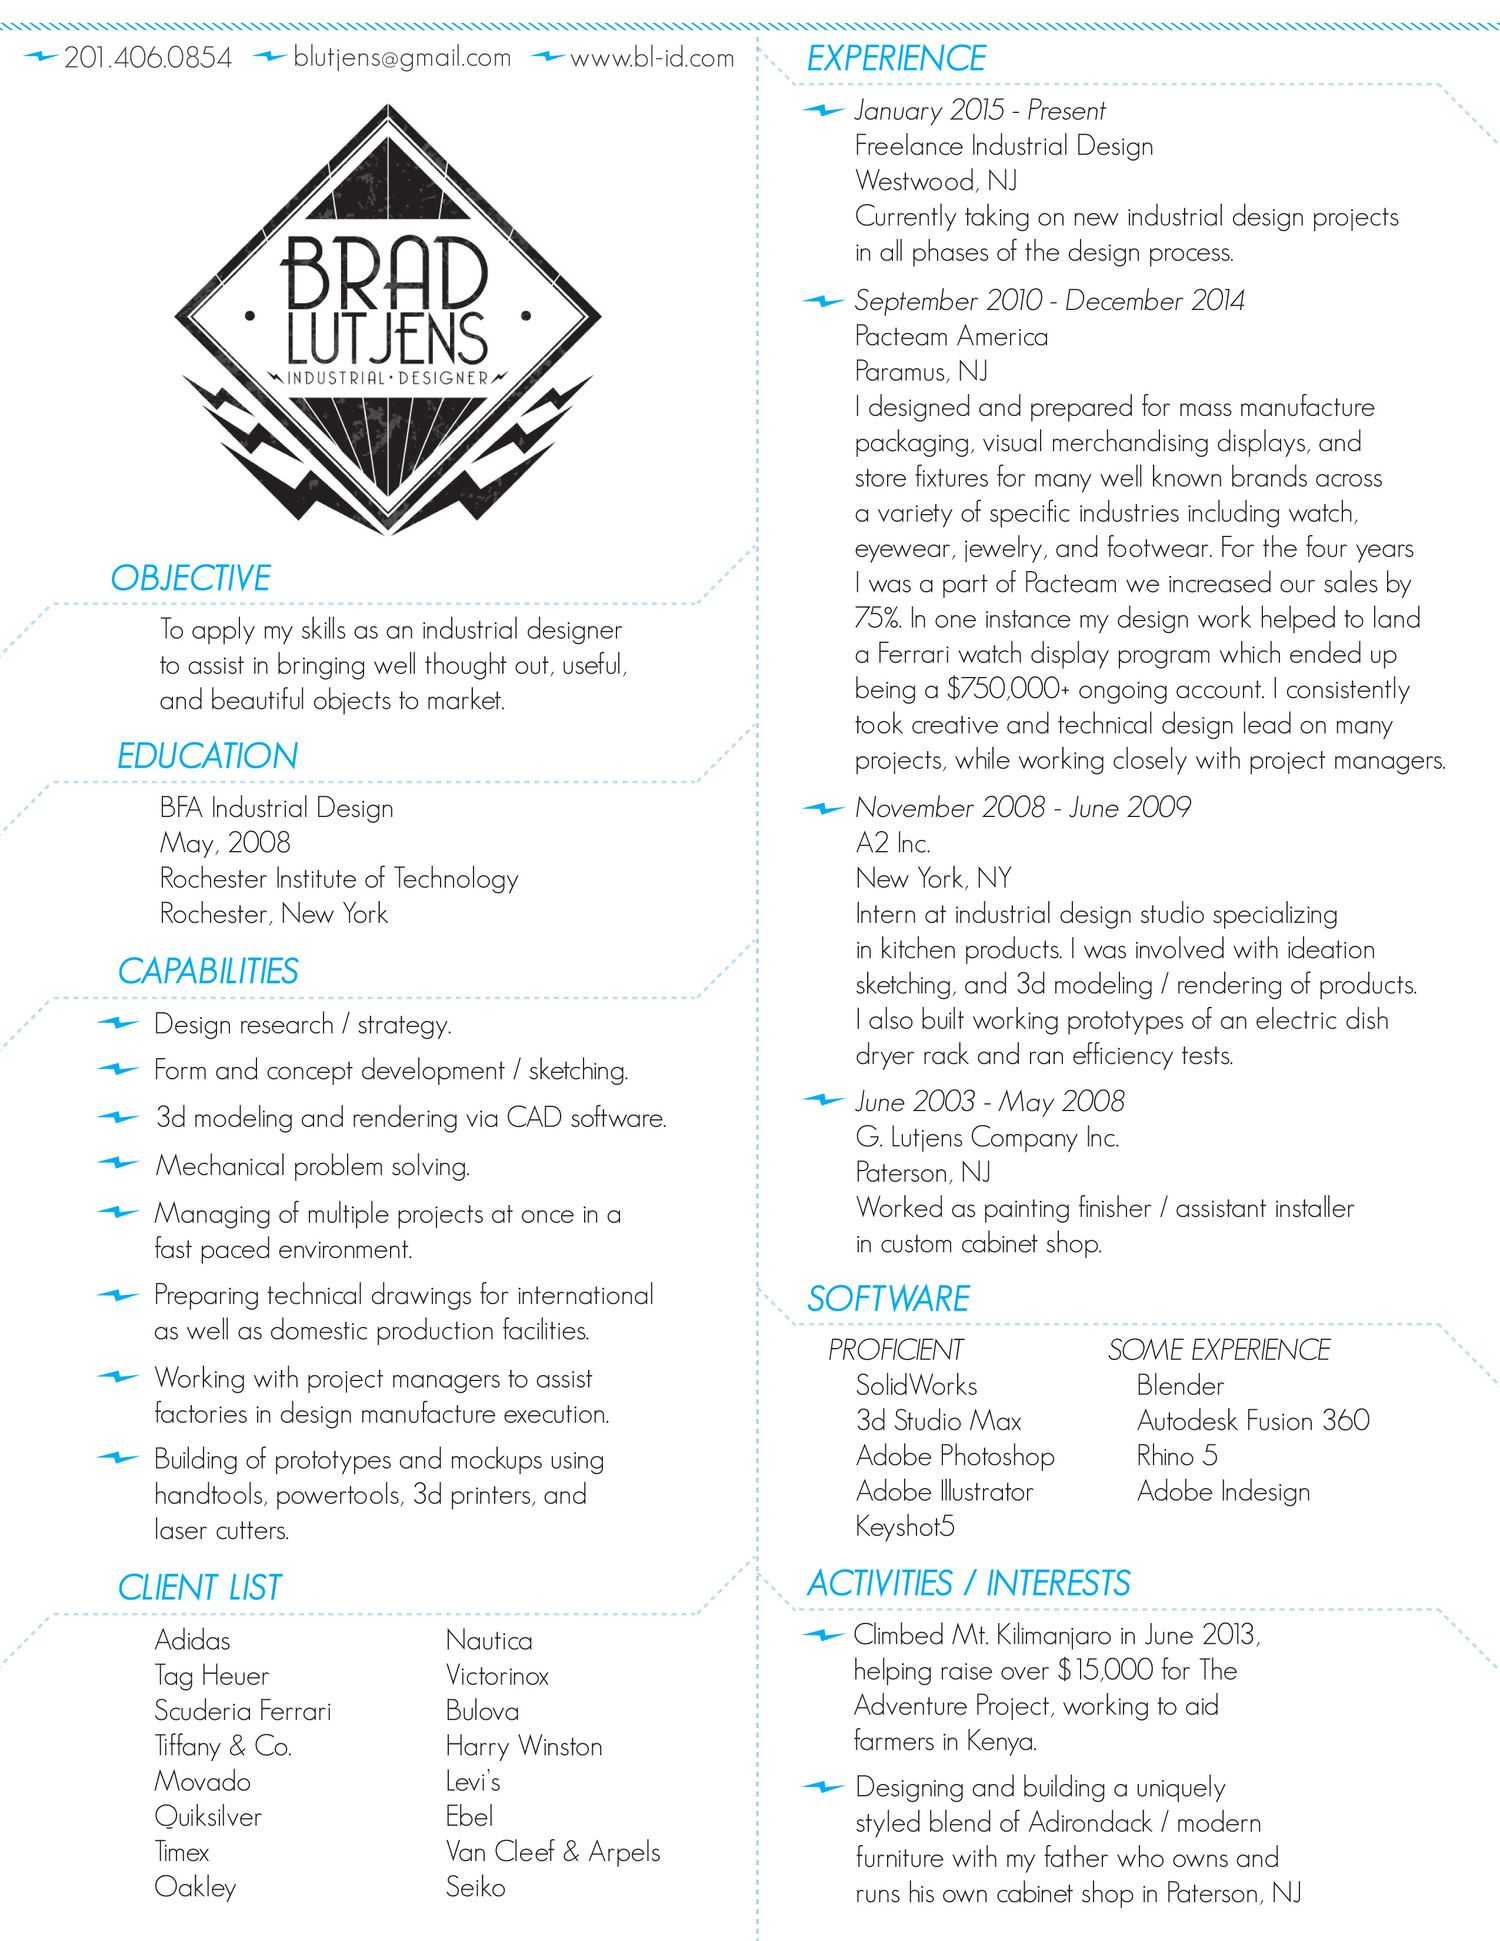 brad lutjens resume jpg design resumes pinterest design resume